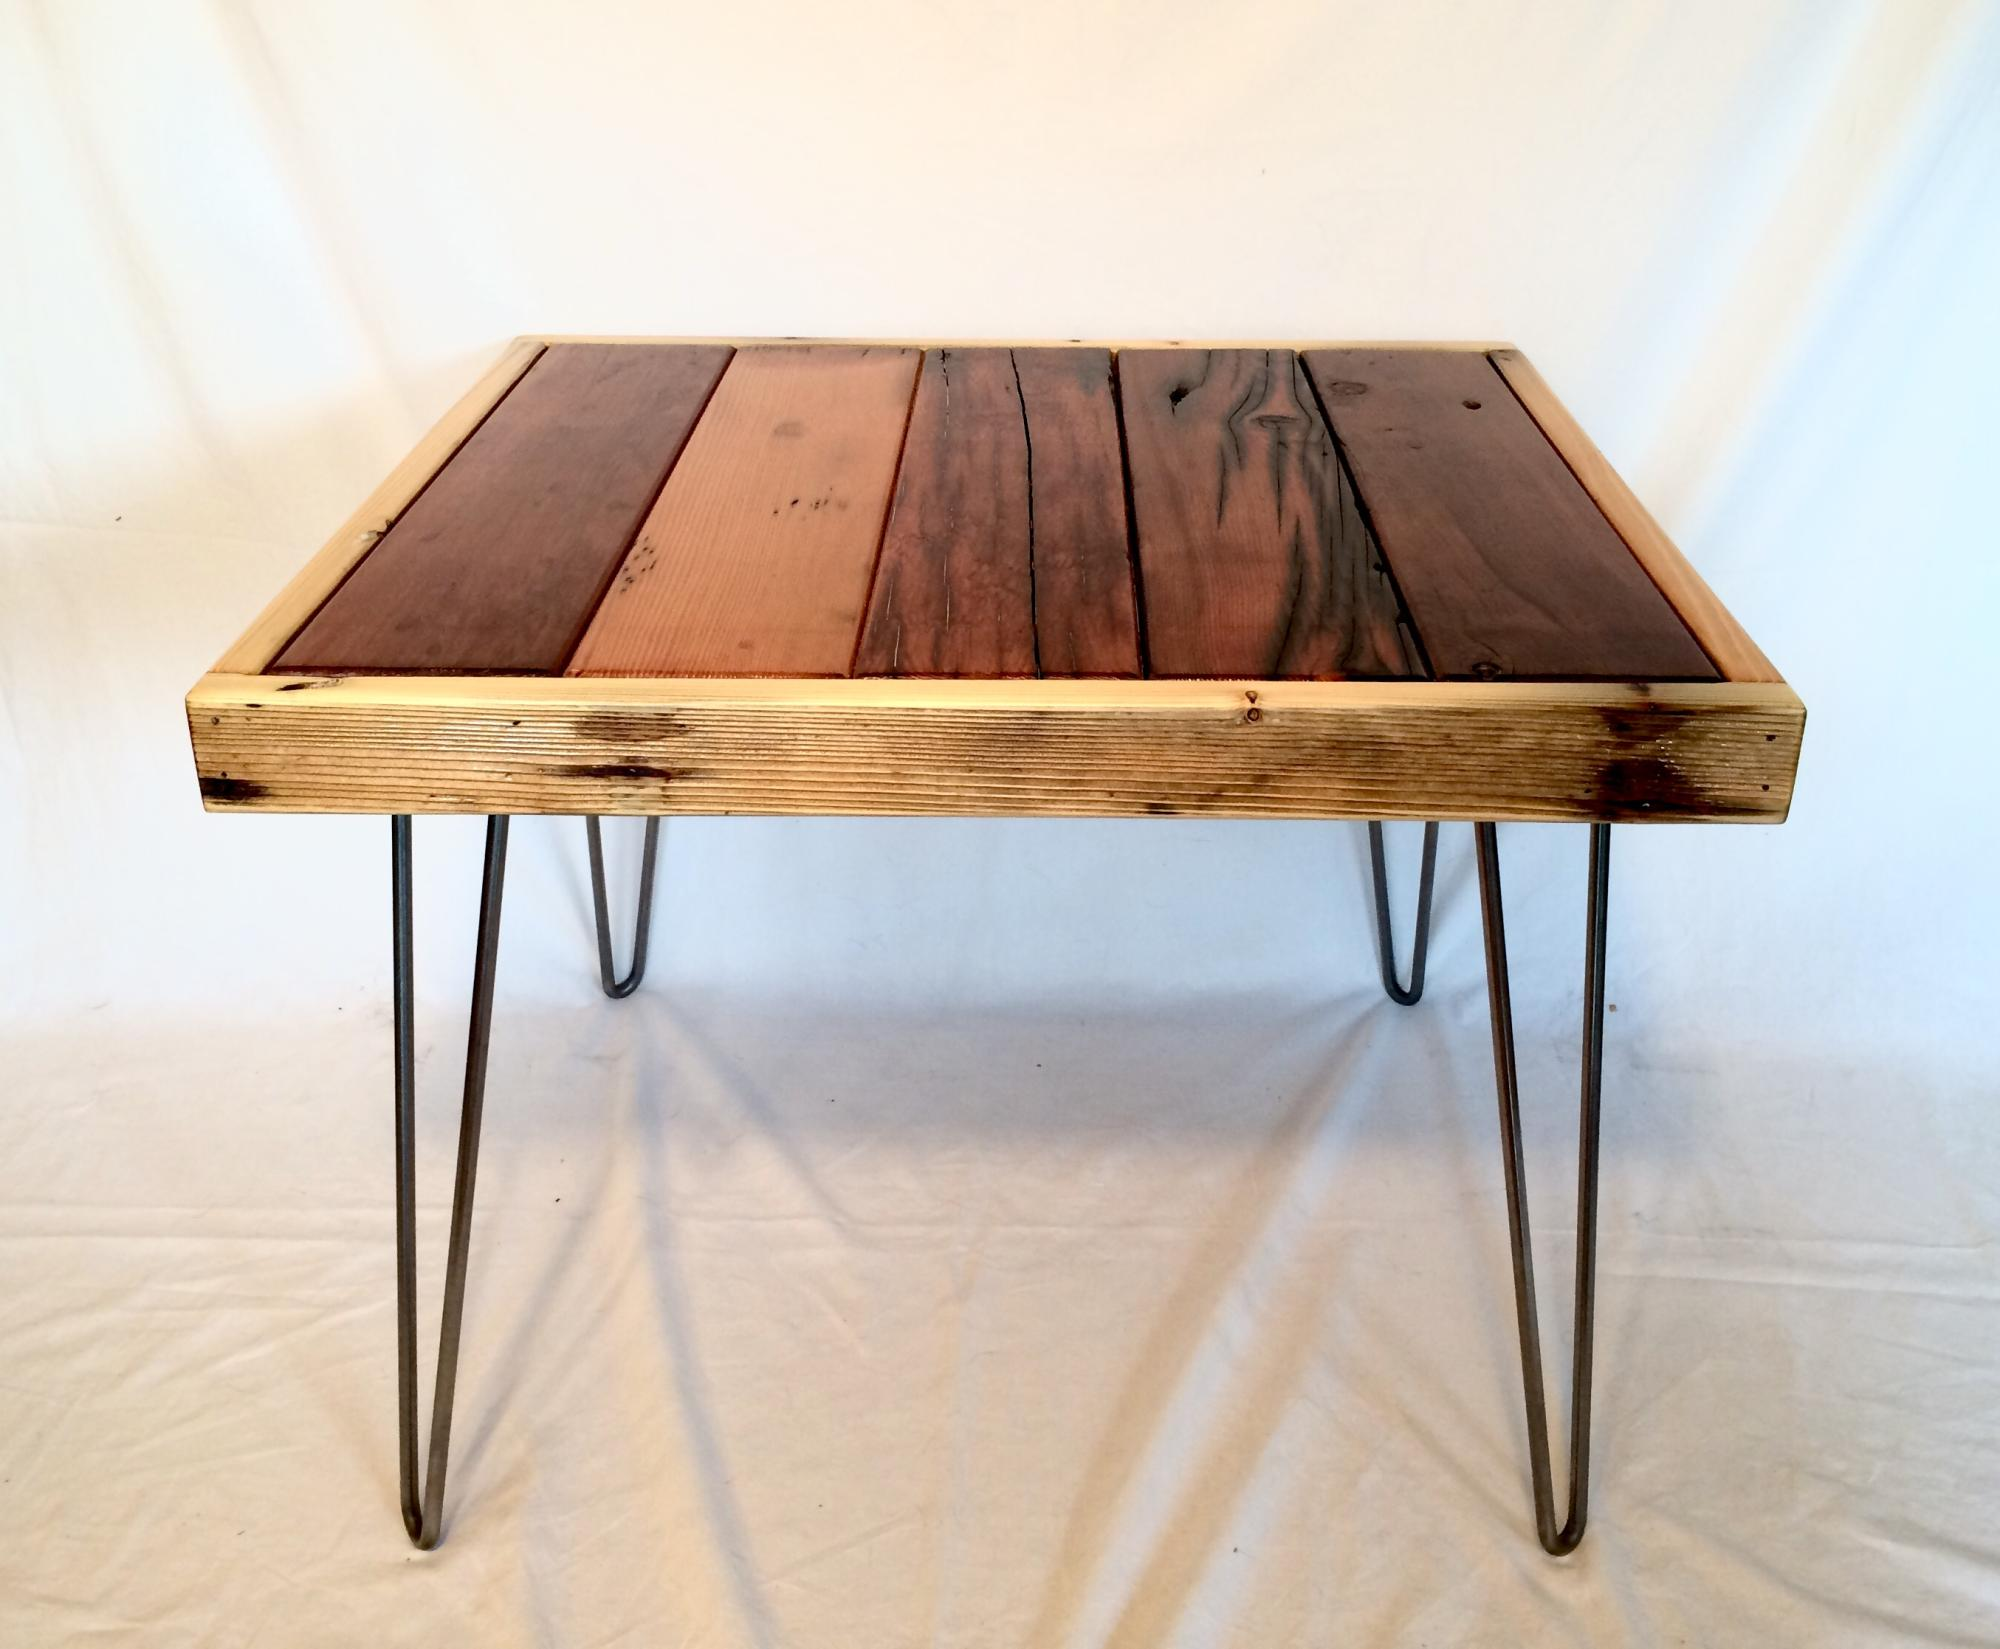 Mixed drift lumber side or coffee table w/steel hairpin legs.  26.5Lx23.5x20H  $275